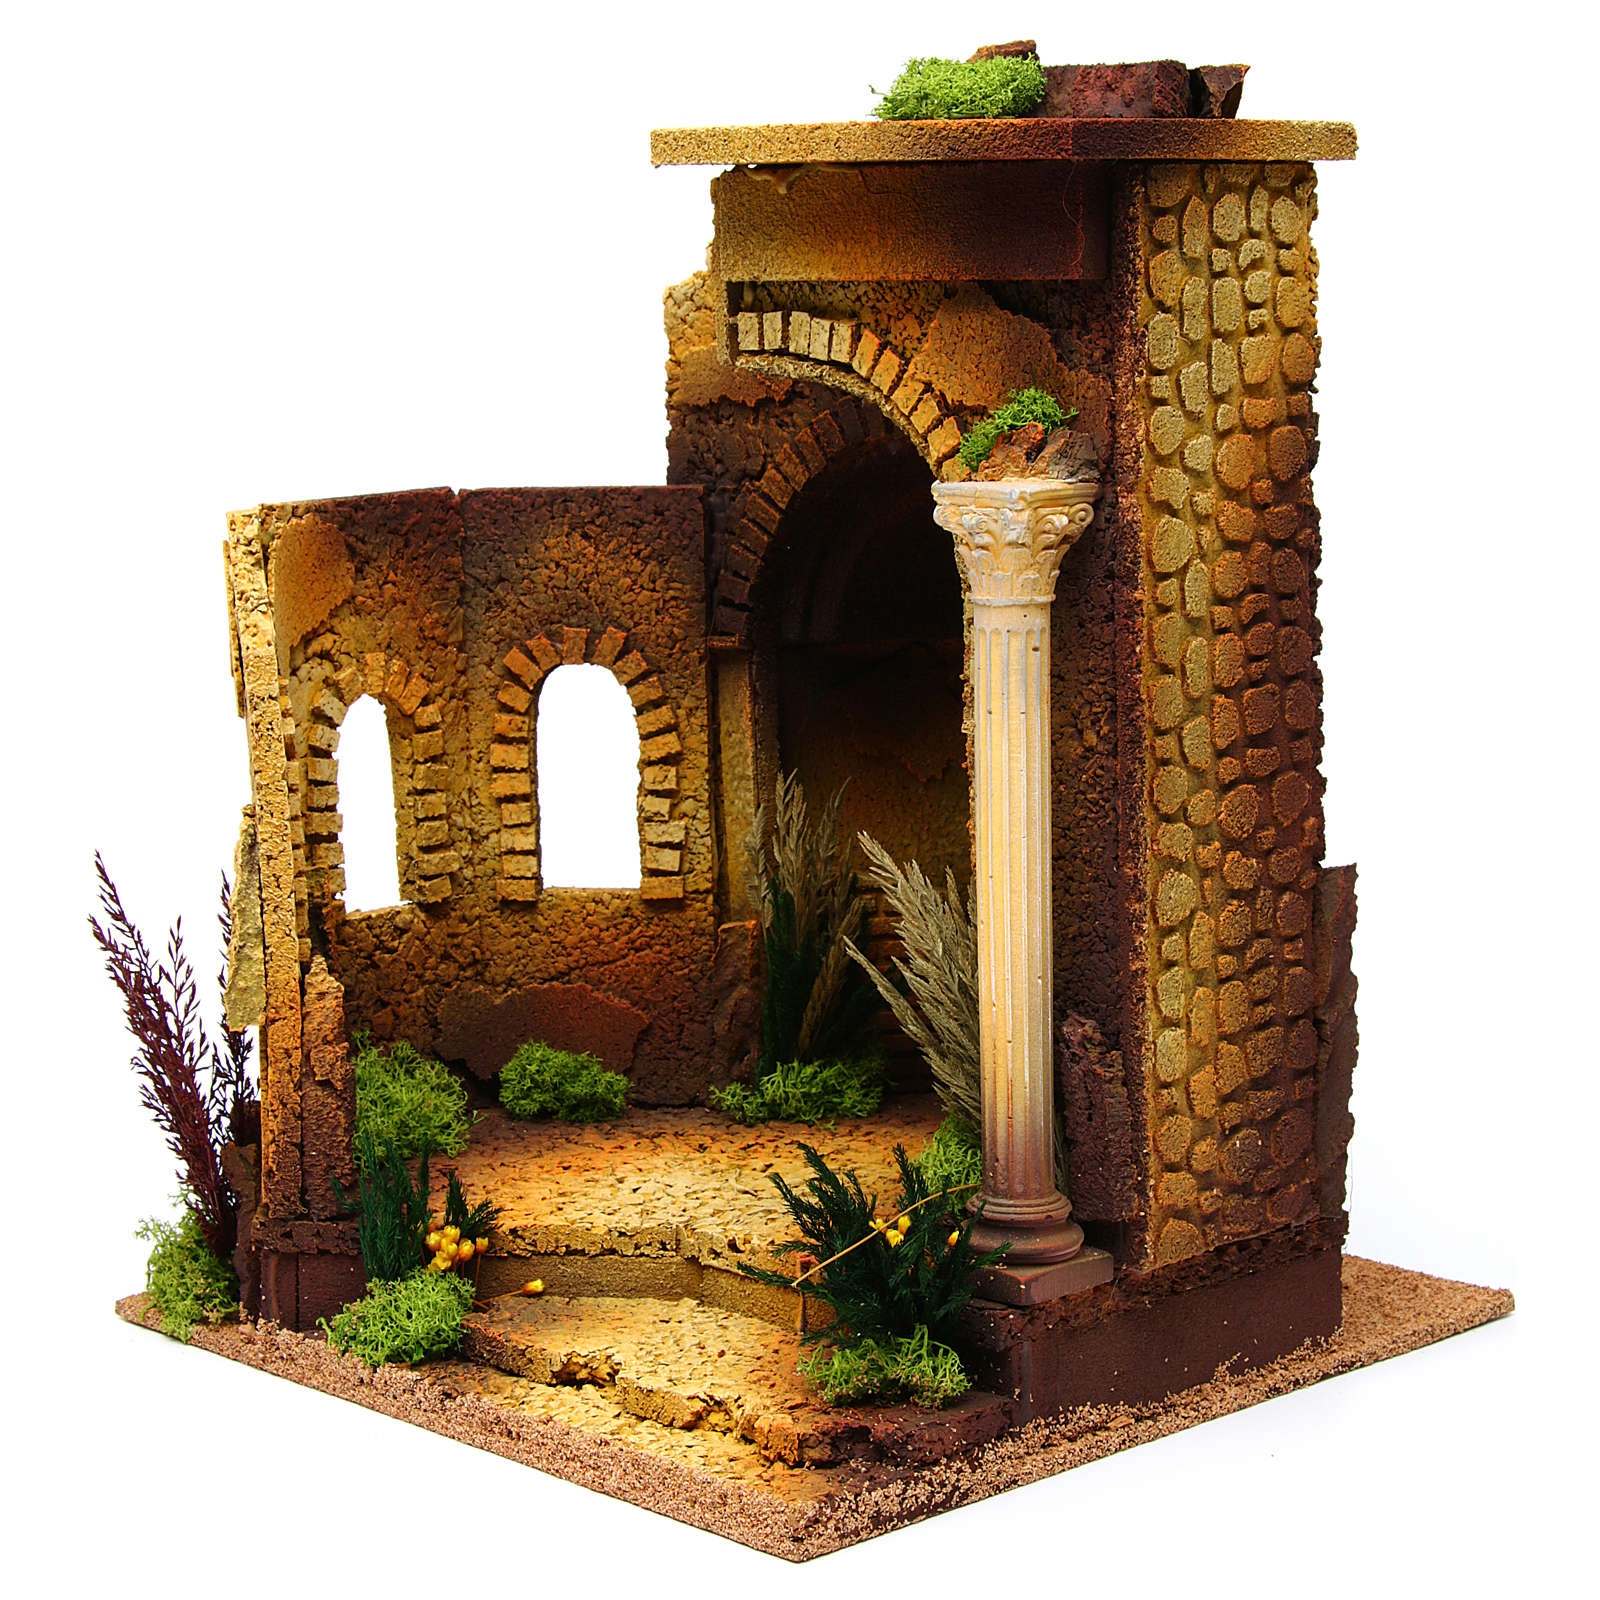 Nativity setting, Roman temple, antique style with arch 4